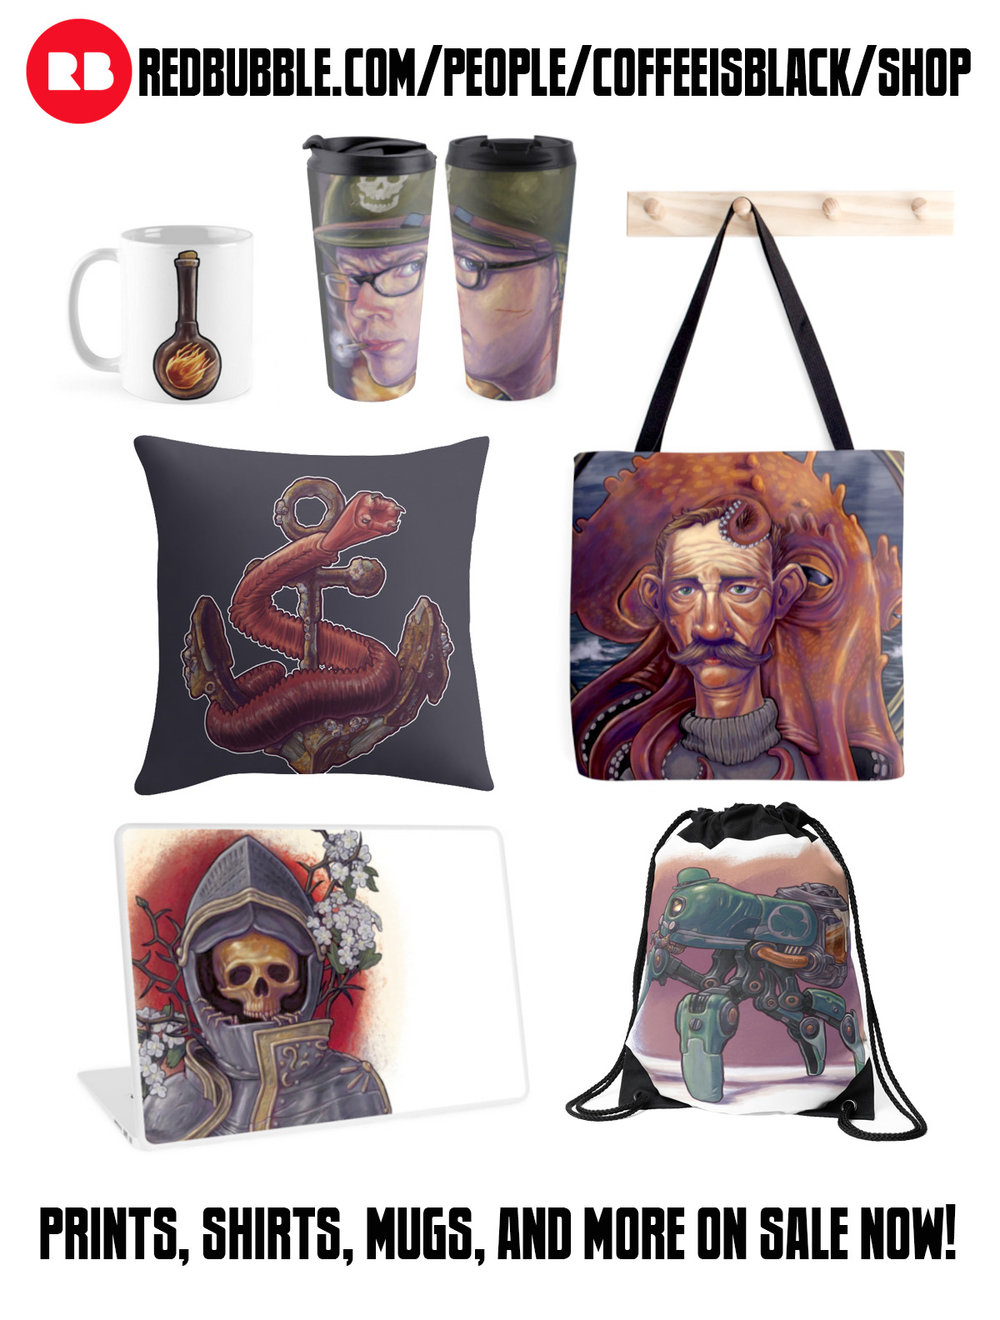 My new shop on Redbubble is up and running with high quality prints, shirts, mugs, and a whole lot more. Click Here! Use promo code: spruceup to get 20% off any tee purchase on Saturday the 30th.